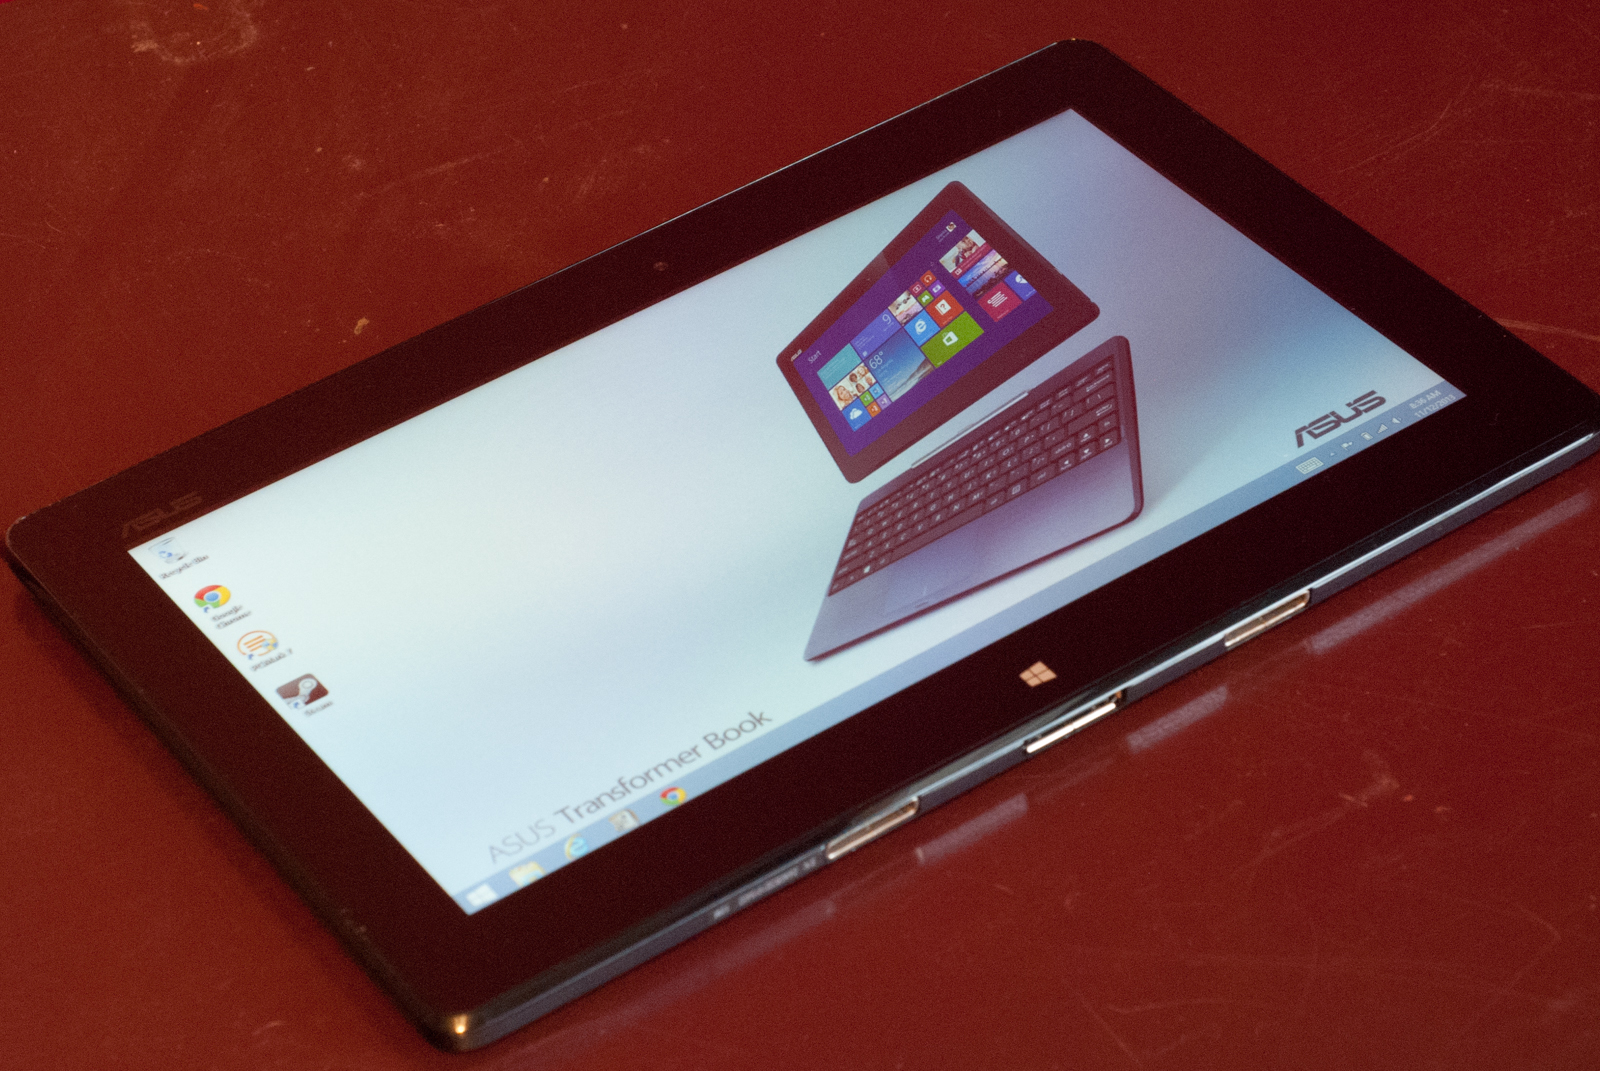 Asus transformer book t100 review bringing the netbook back almost ars technica - Asus transformer t100 ports ...